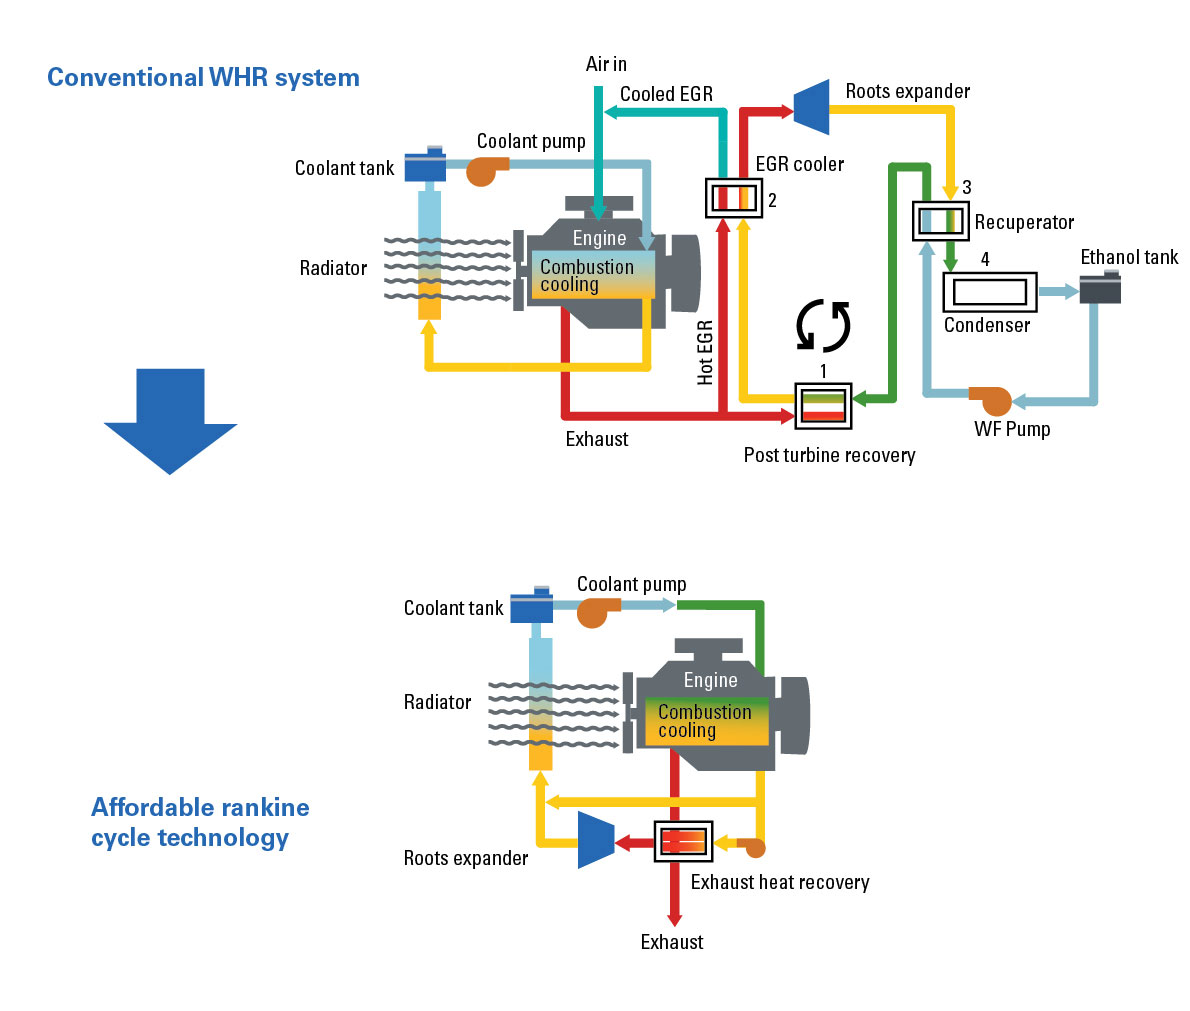 Eaton's affordable Rankine cycle could bring fuel-economy improvements of around 5%.